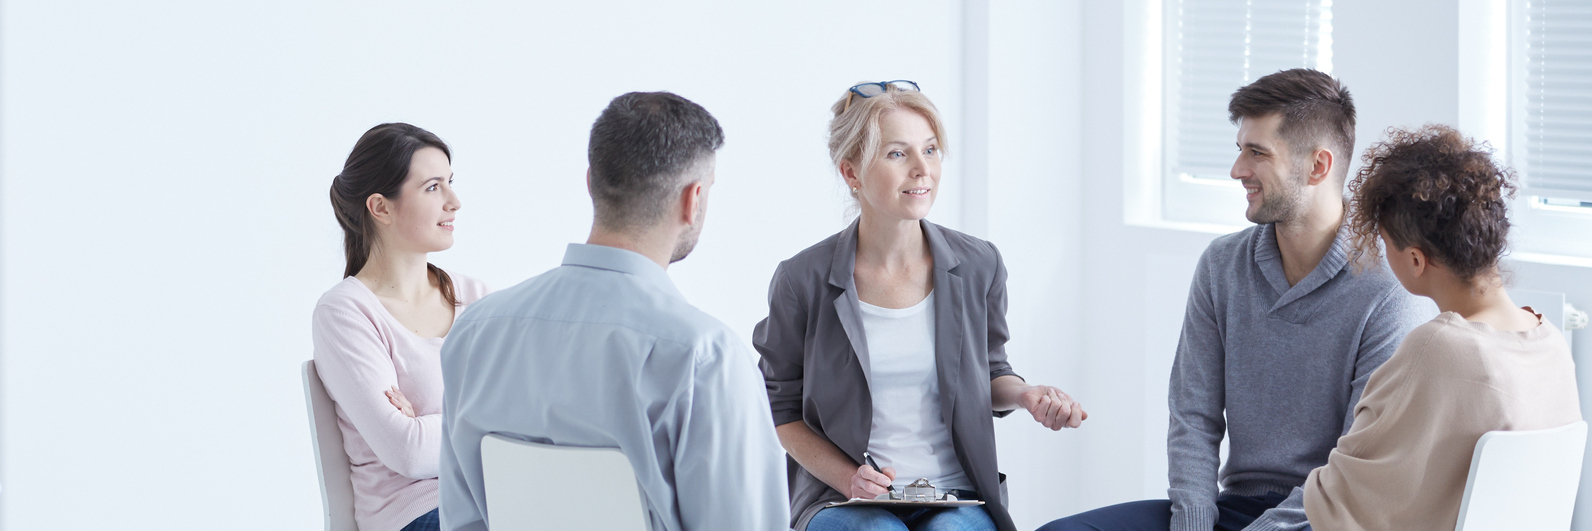 people sitting in circle on chairs in plain room group therapy support